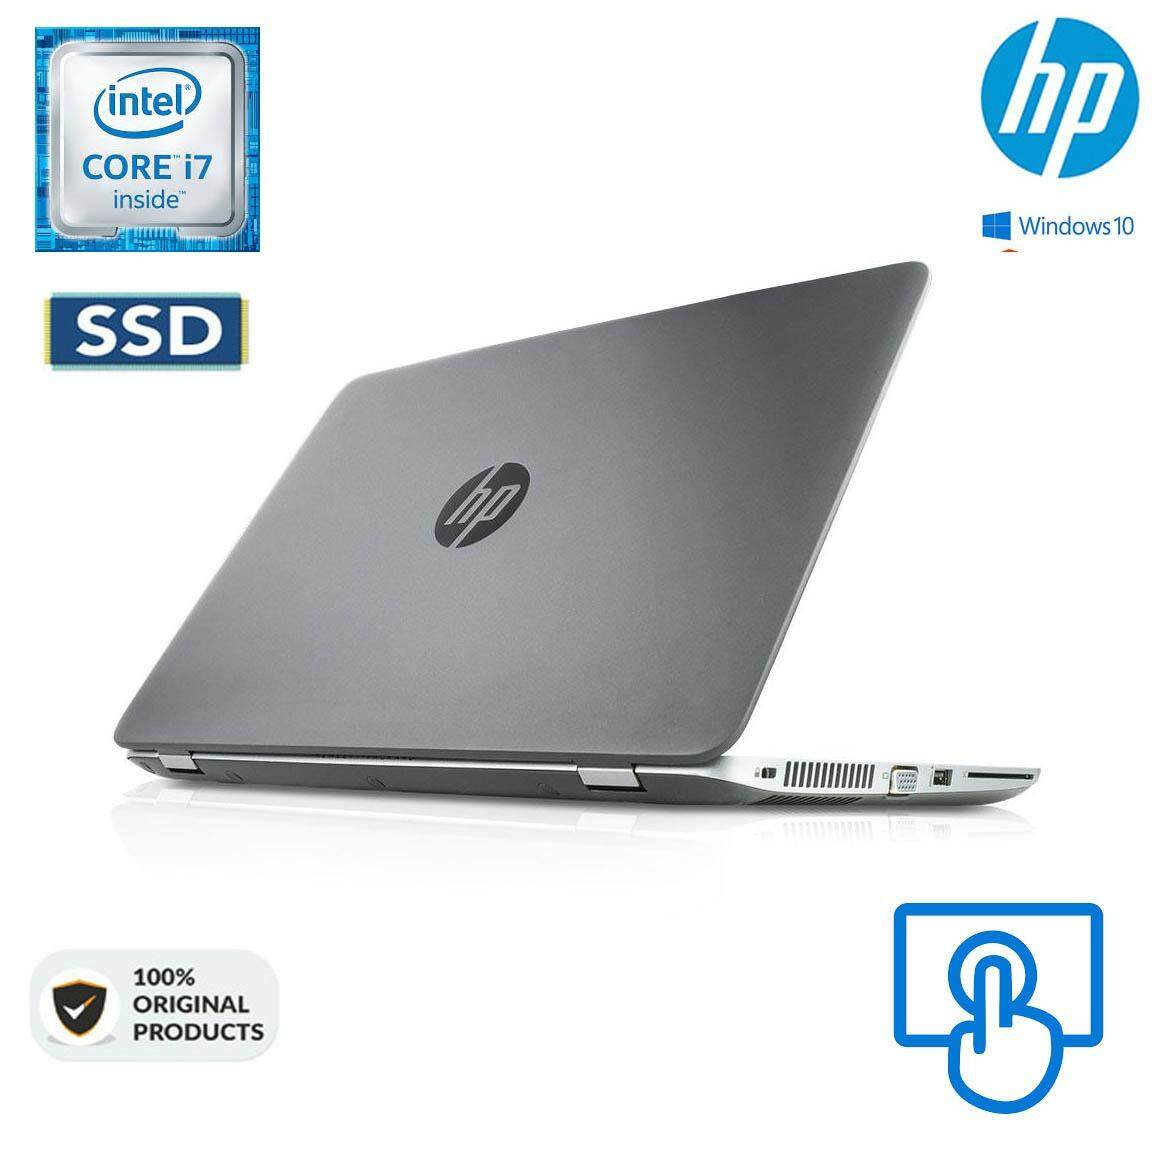 HP ELITEBOOK 820 (G1) CORE I7 ( 12.5 INCH TOUCHSCREEN-ULTRABOOK ) 8GB RAM/ 128GB SSD Malaysia